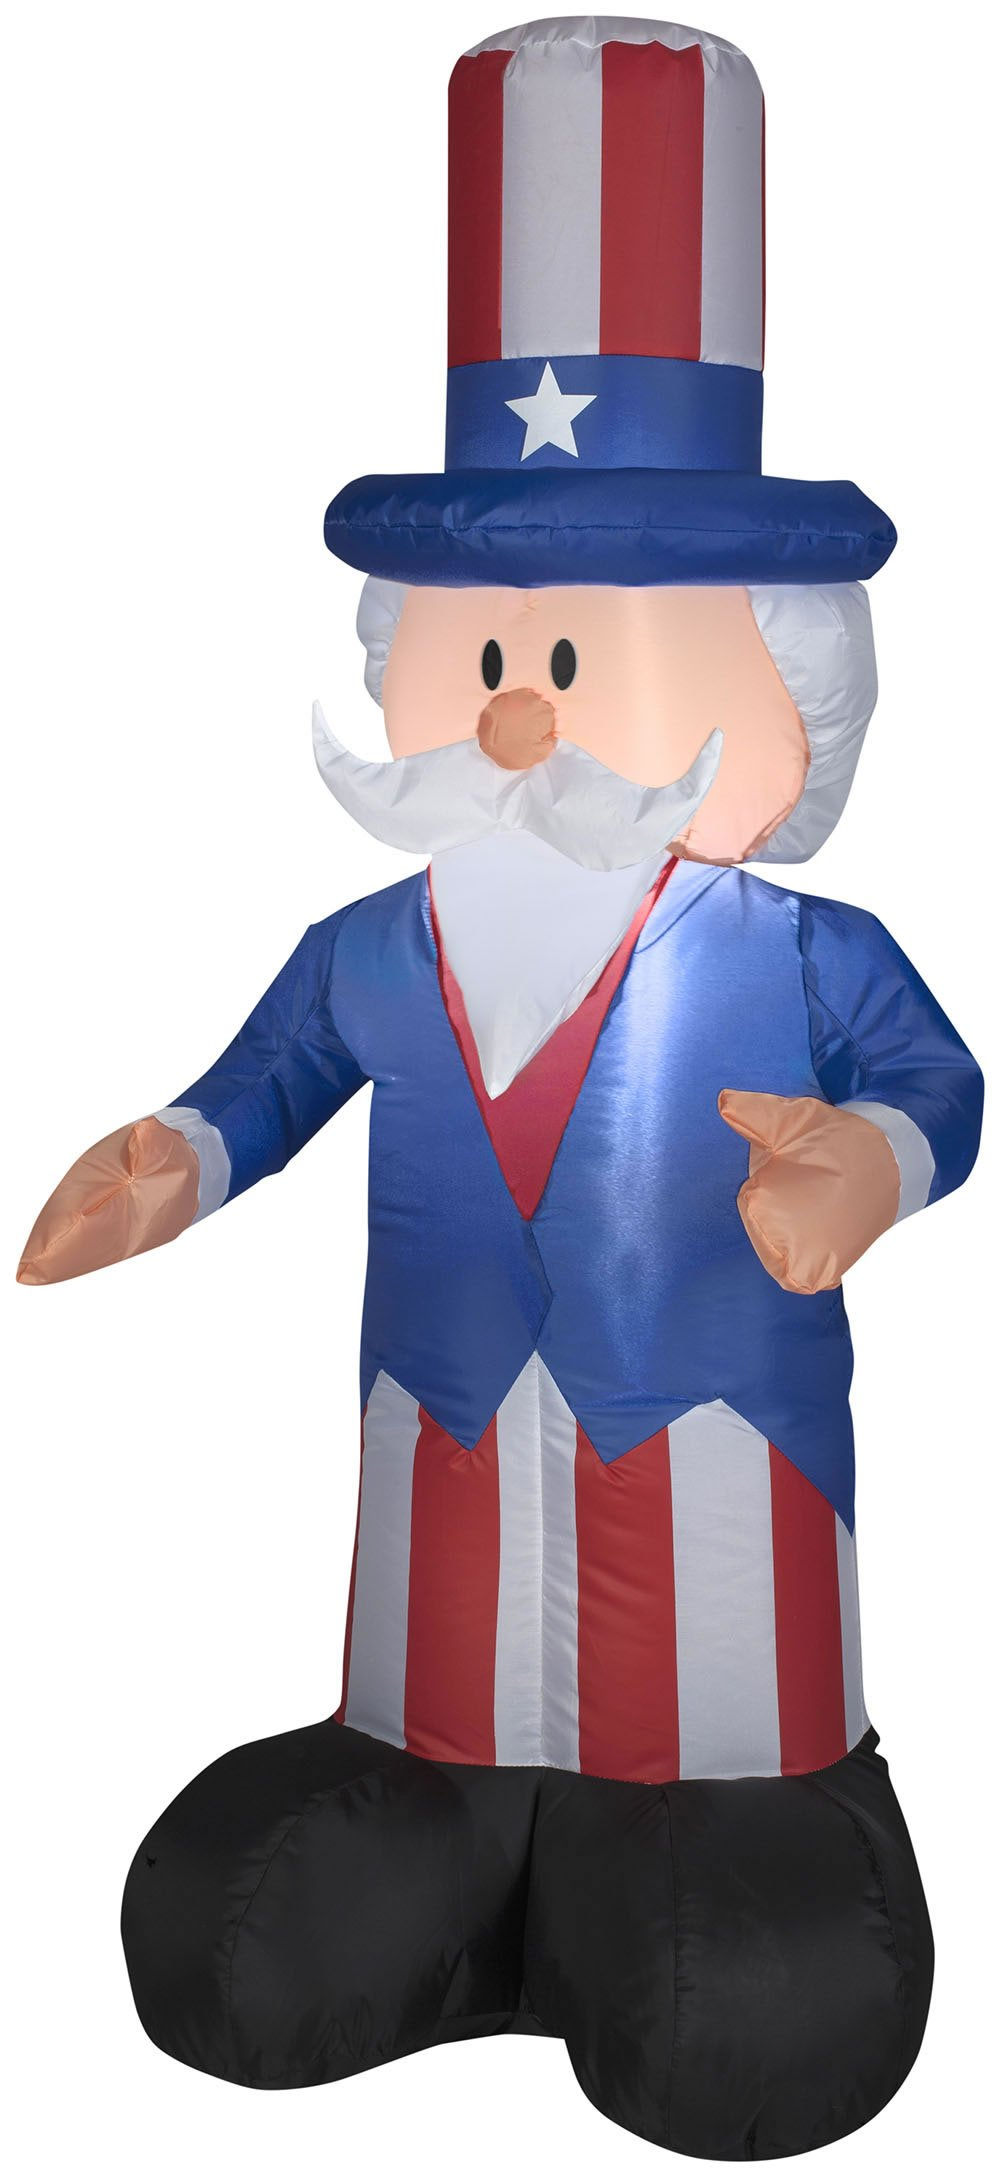 Gemmy Airblown Inflatable Patriotic Uncle Sam with Top Hat July 4th Life Sized Decoration - 4-foot Tall by Gemmy (Image #1)